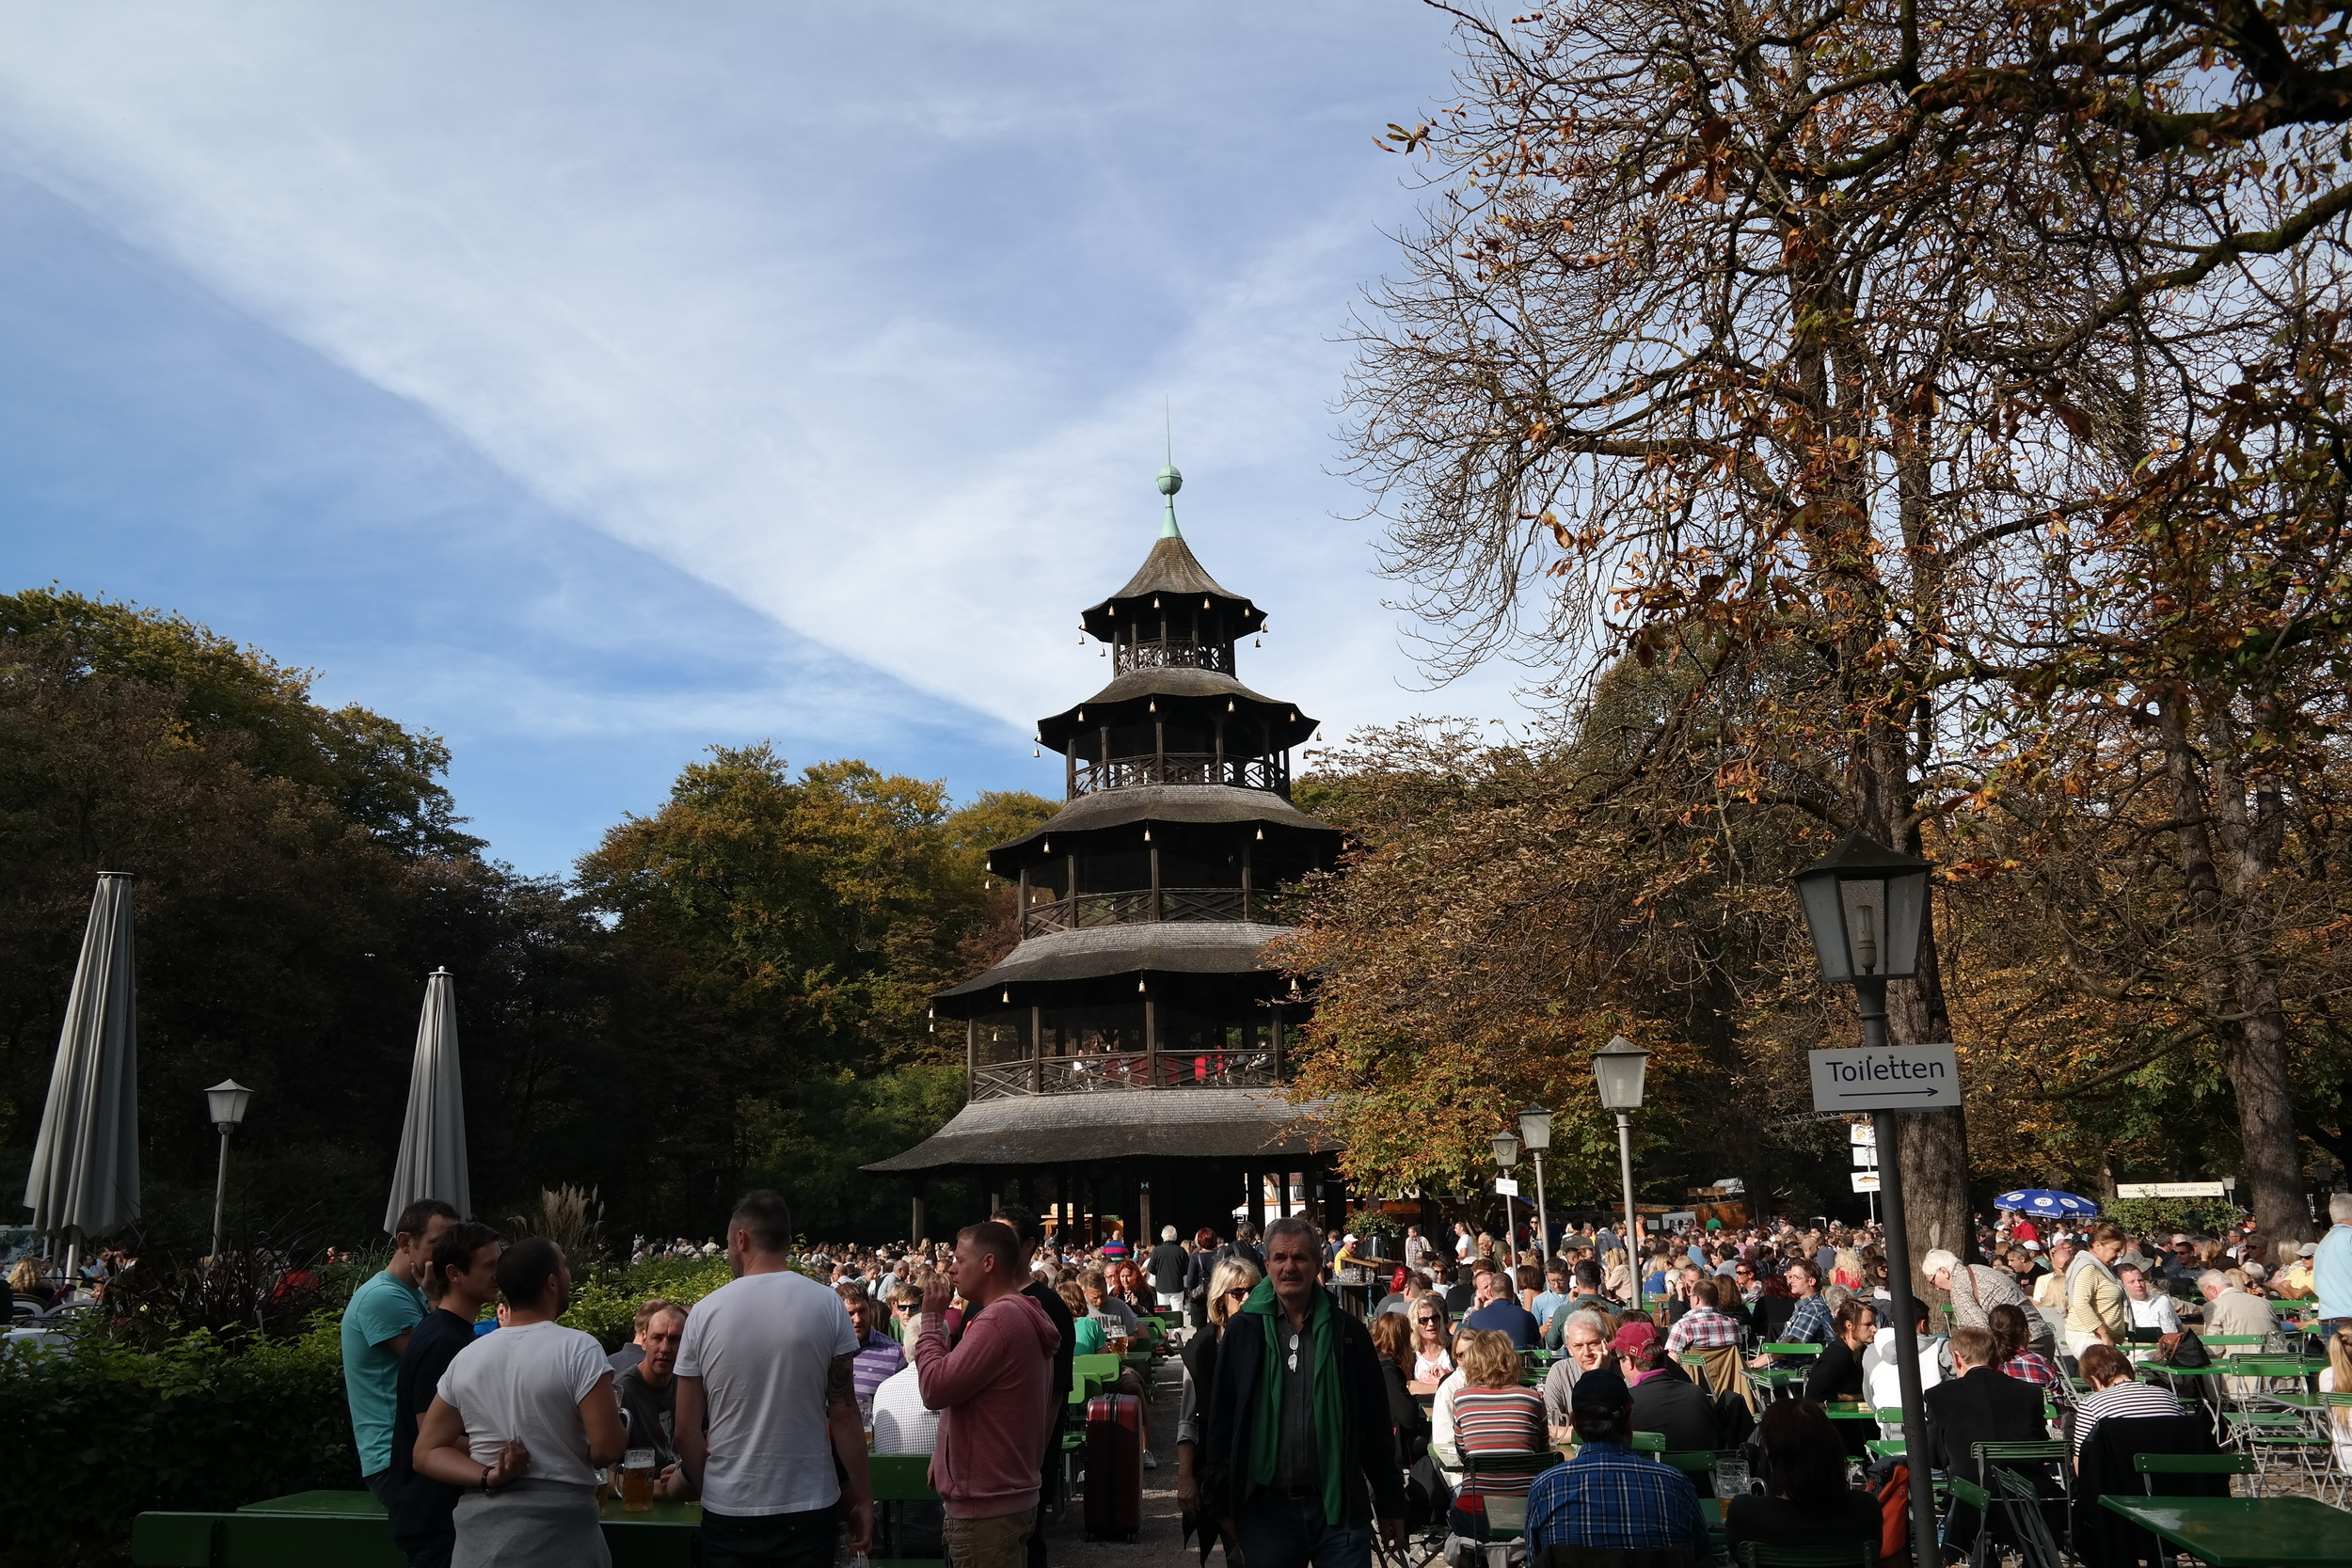 Chinesischer Turm   (Chinese beer garden). Such a fun atmosphere, great for people watching, and food and drink at not too exorbitant prices.